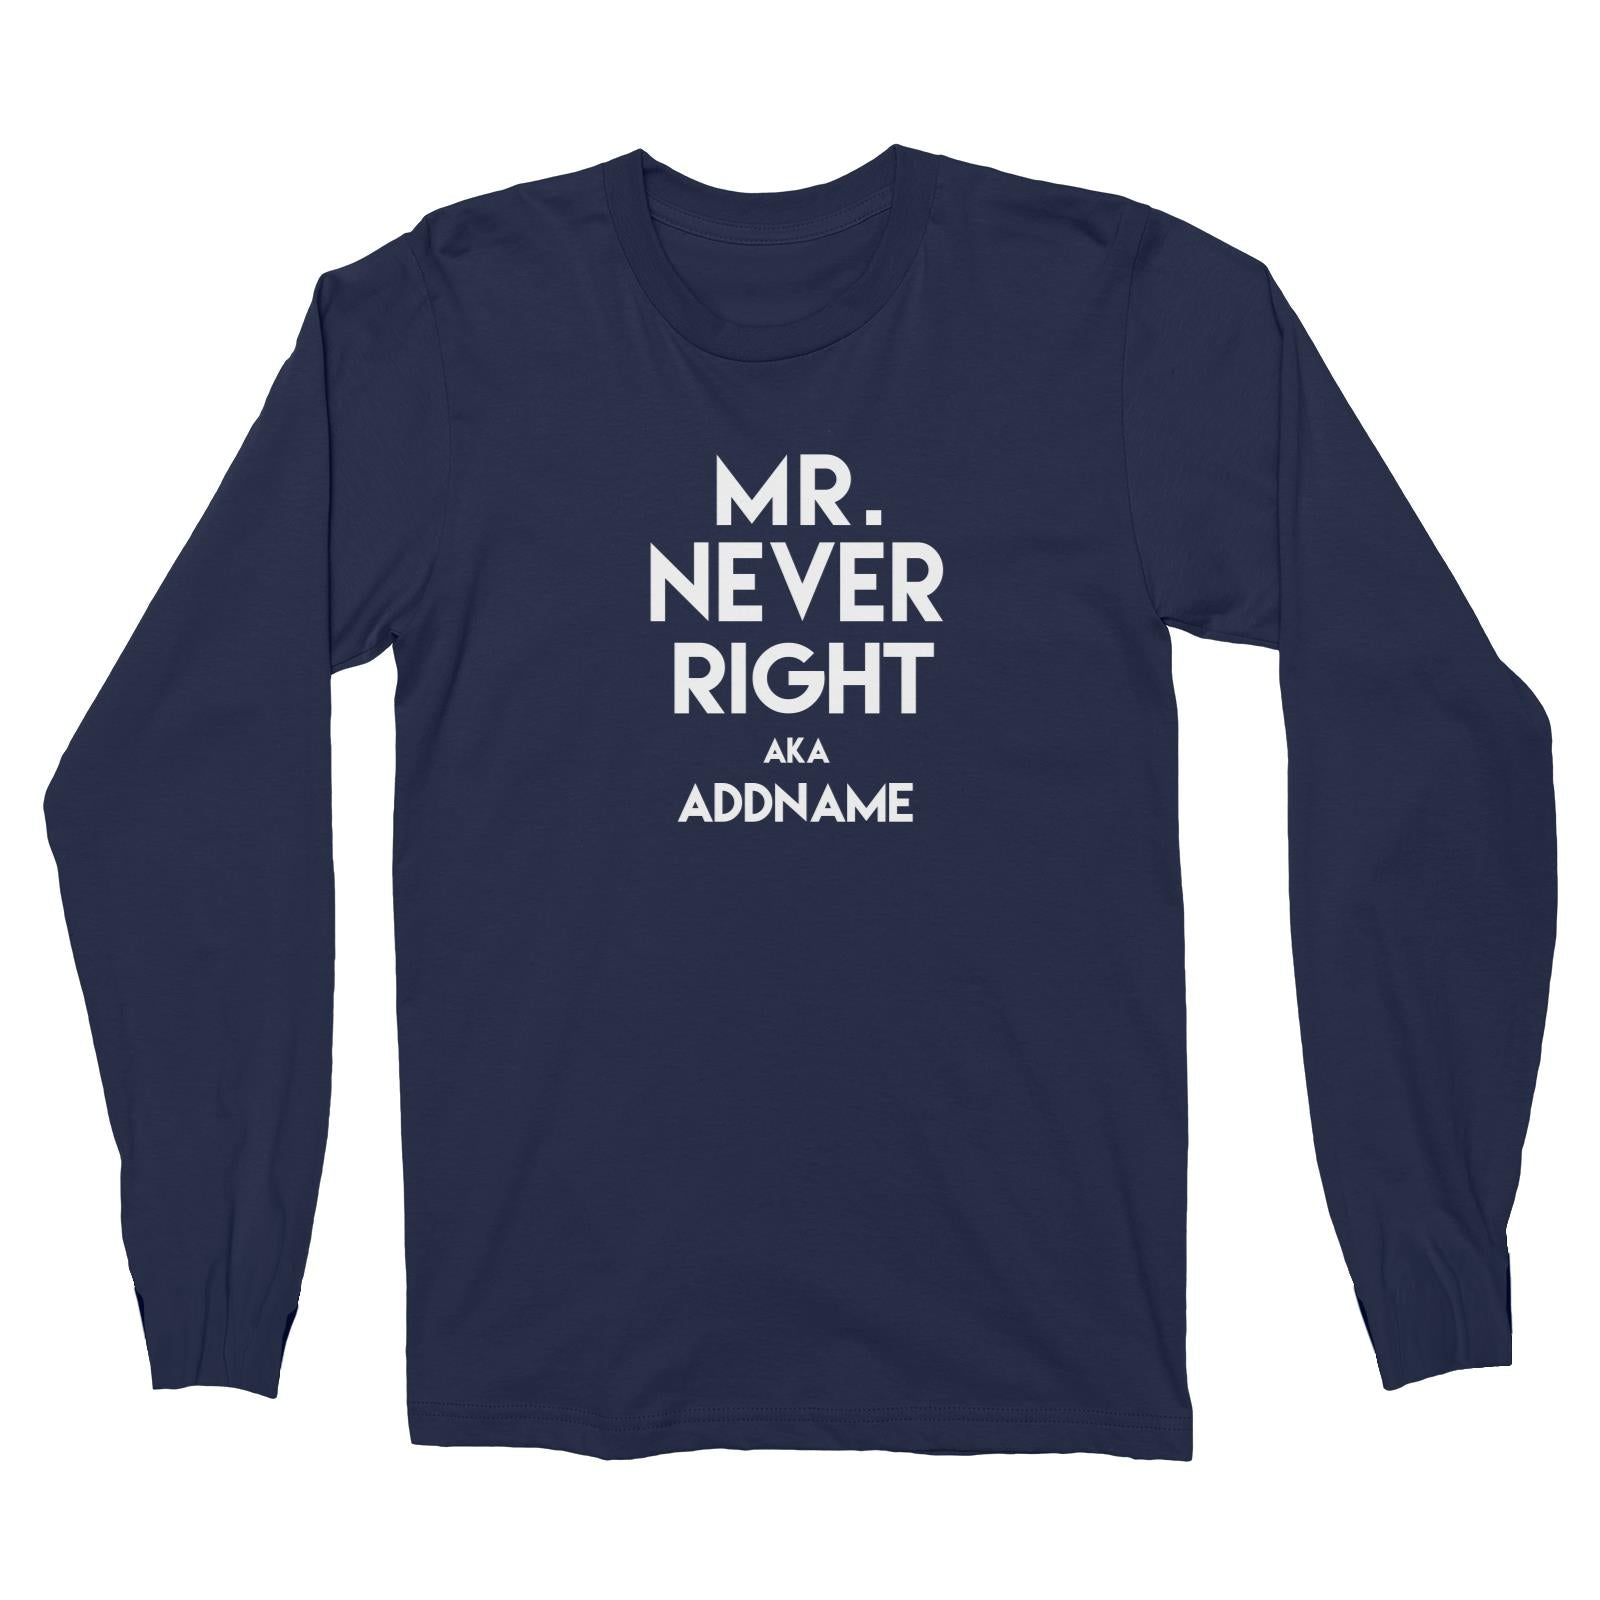 Mr Never Right Addname Long Sleeve Unisex T-Shirt  Matching Family Funny Personalizable Designs